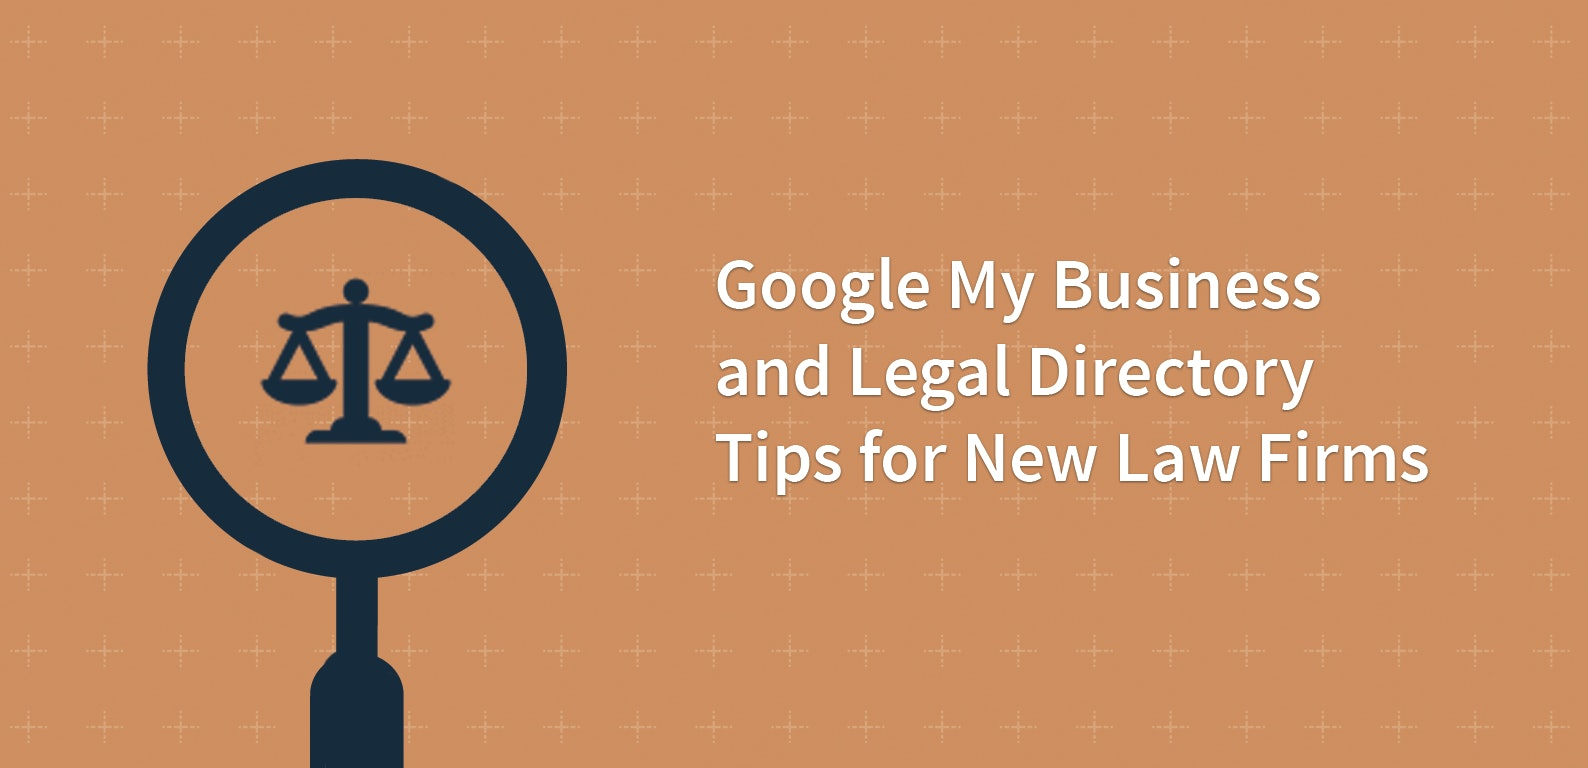 Google My Business and Legal Directory Tips for New Law Firms